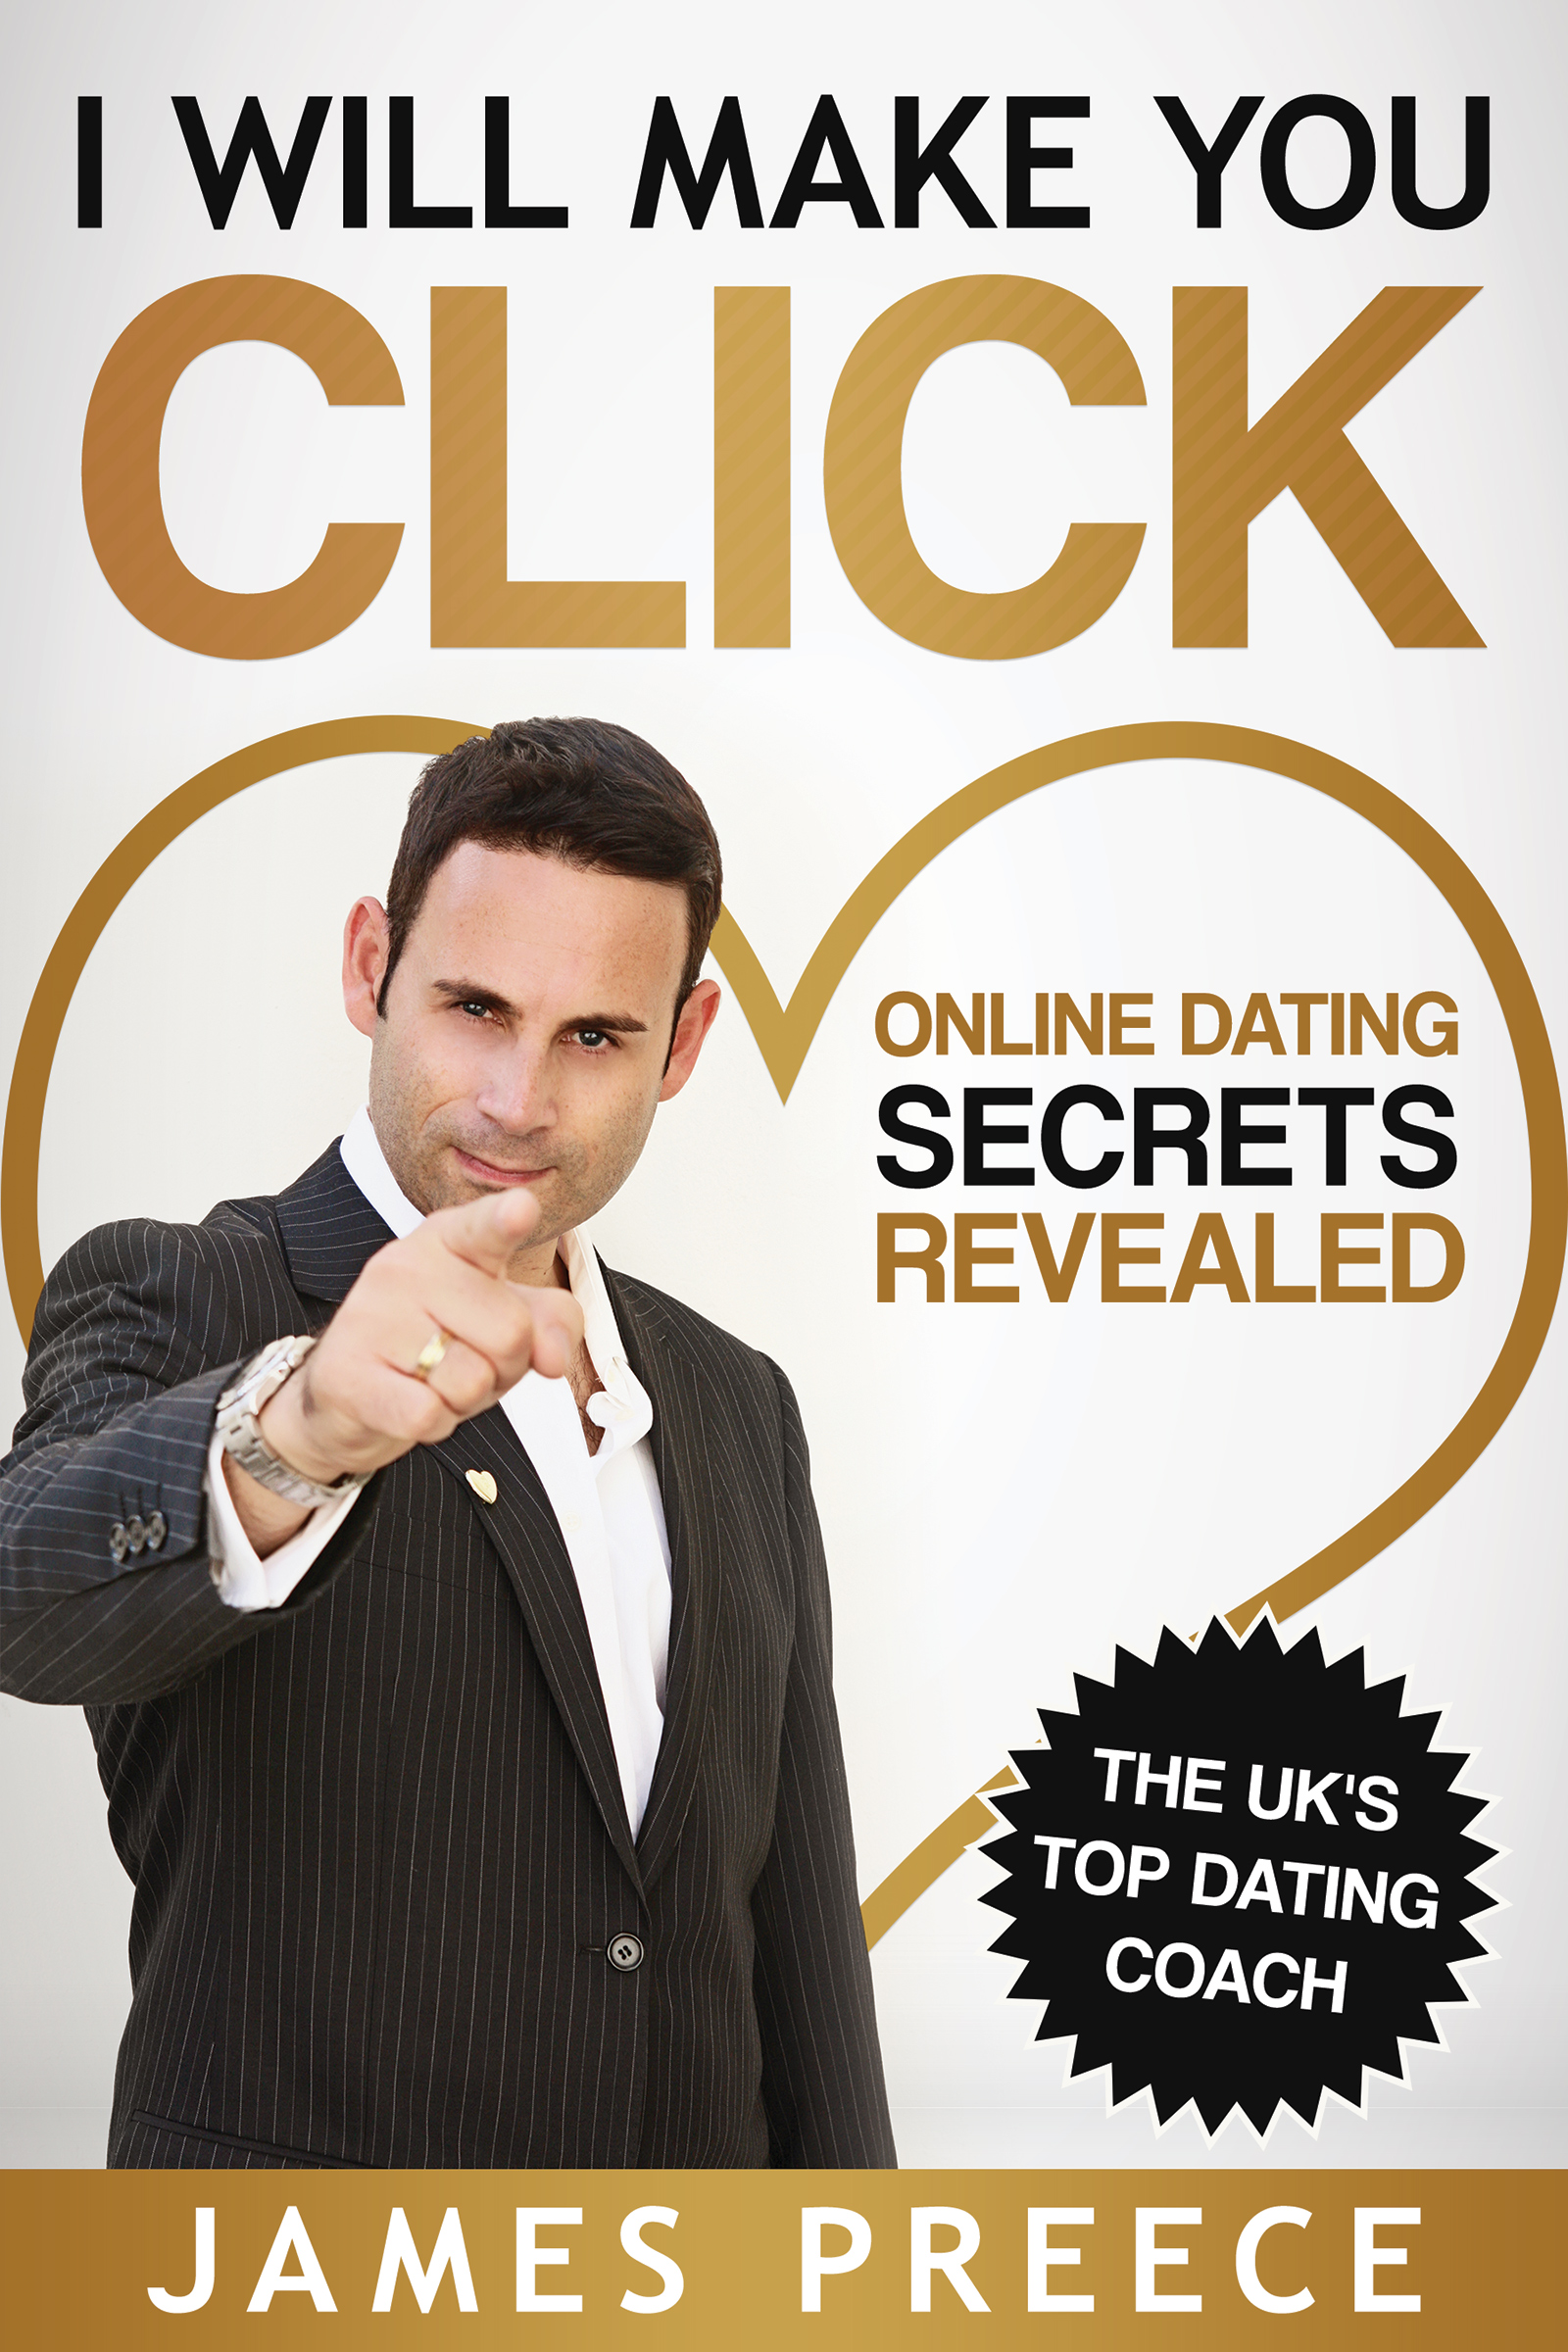 secrets of online dating Not only is matchcom an online dating service, but they're a great online dating service and were, in fact, the first to ever exist match was created in 1995 — when people were still finding dates via family, friends, work, school, and social activities.